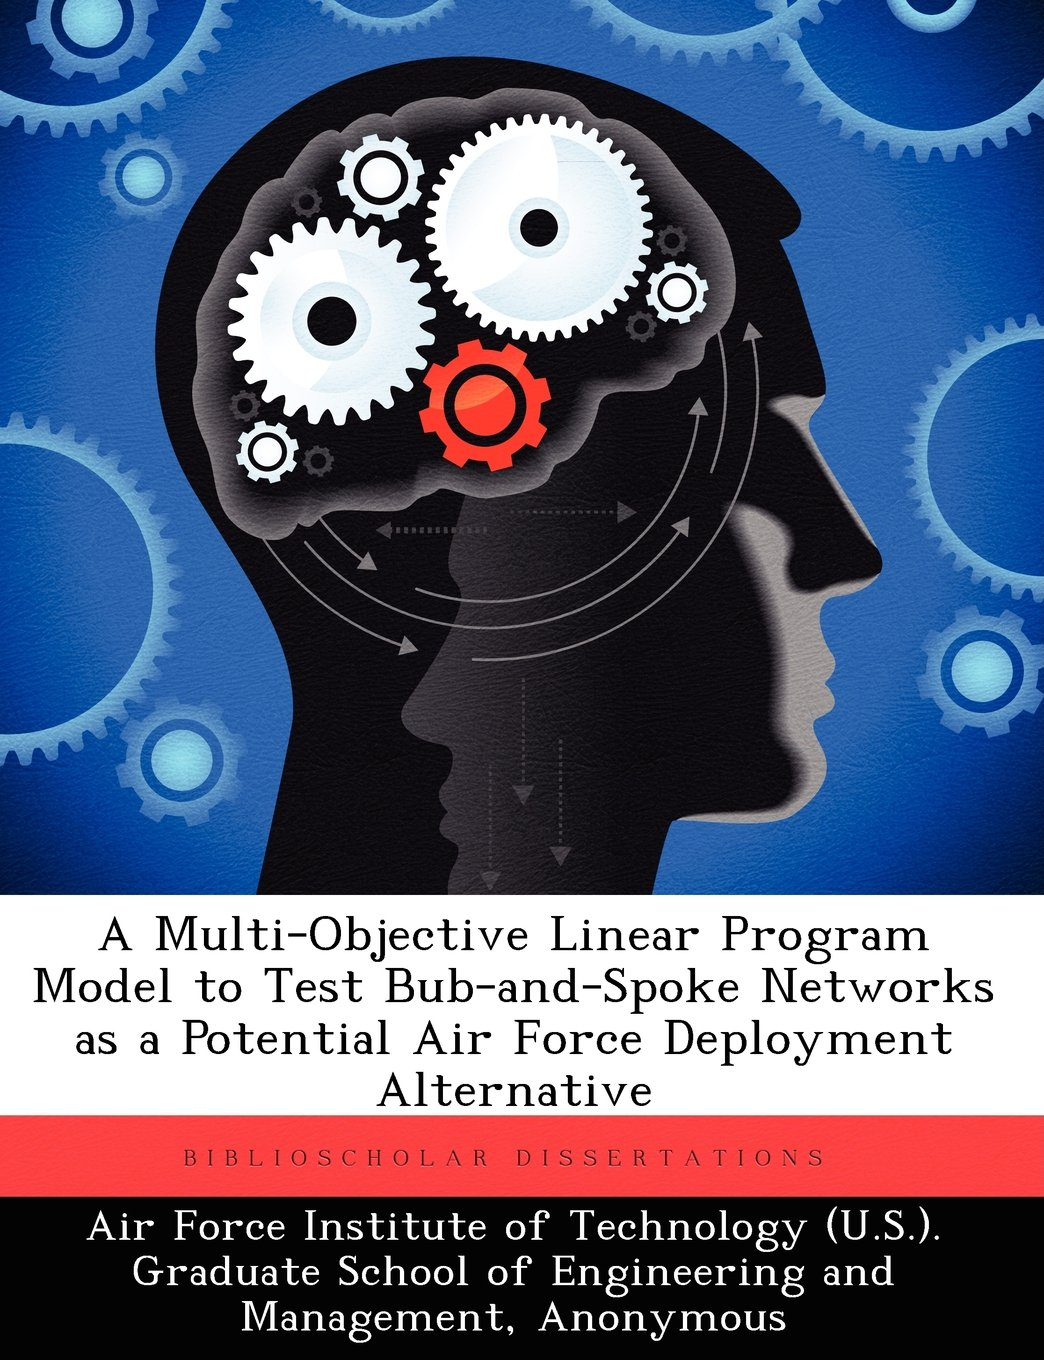 A Multi-Objective Linear Program Model to Test Bub-and-Spoke Networks as a Potential Air Force Deployment Alternative PDF